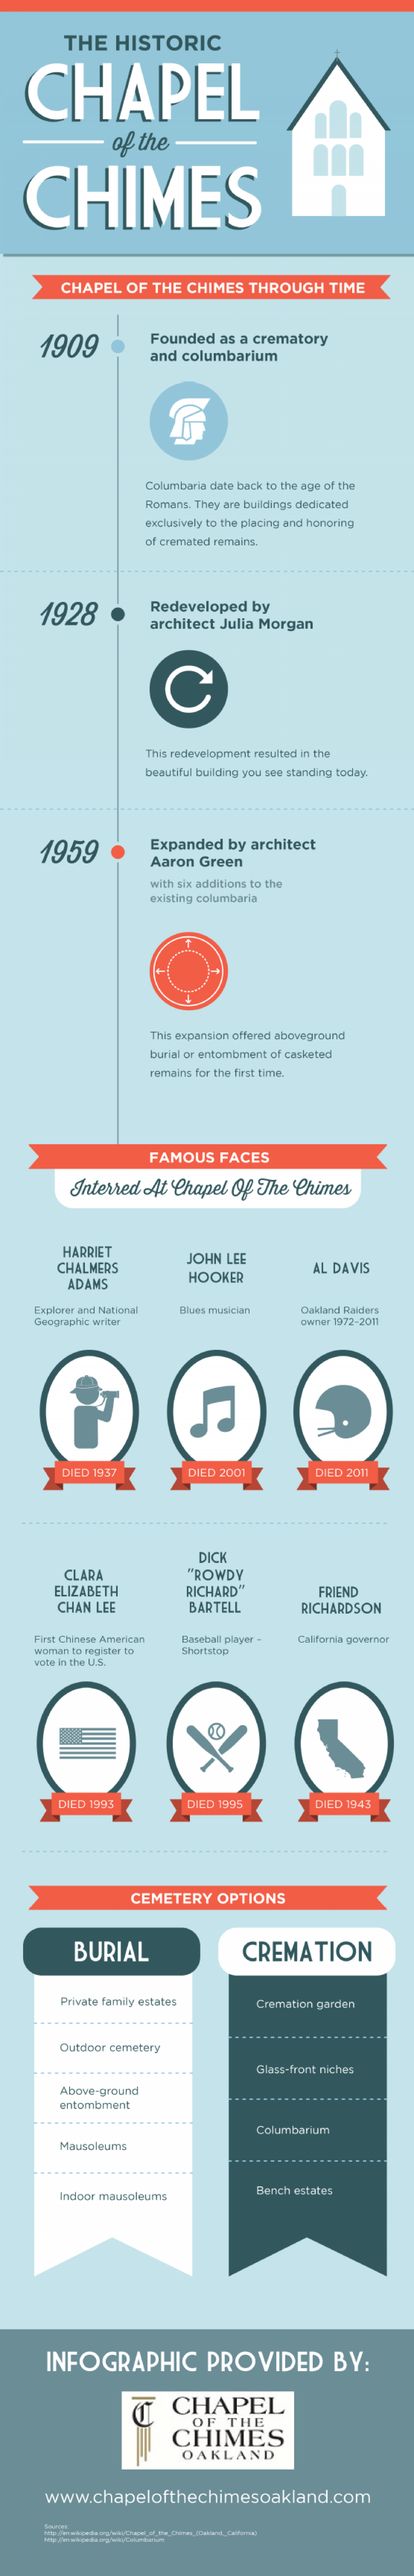 The Historic Chapel of the Chimes Infographic